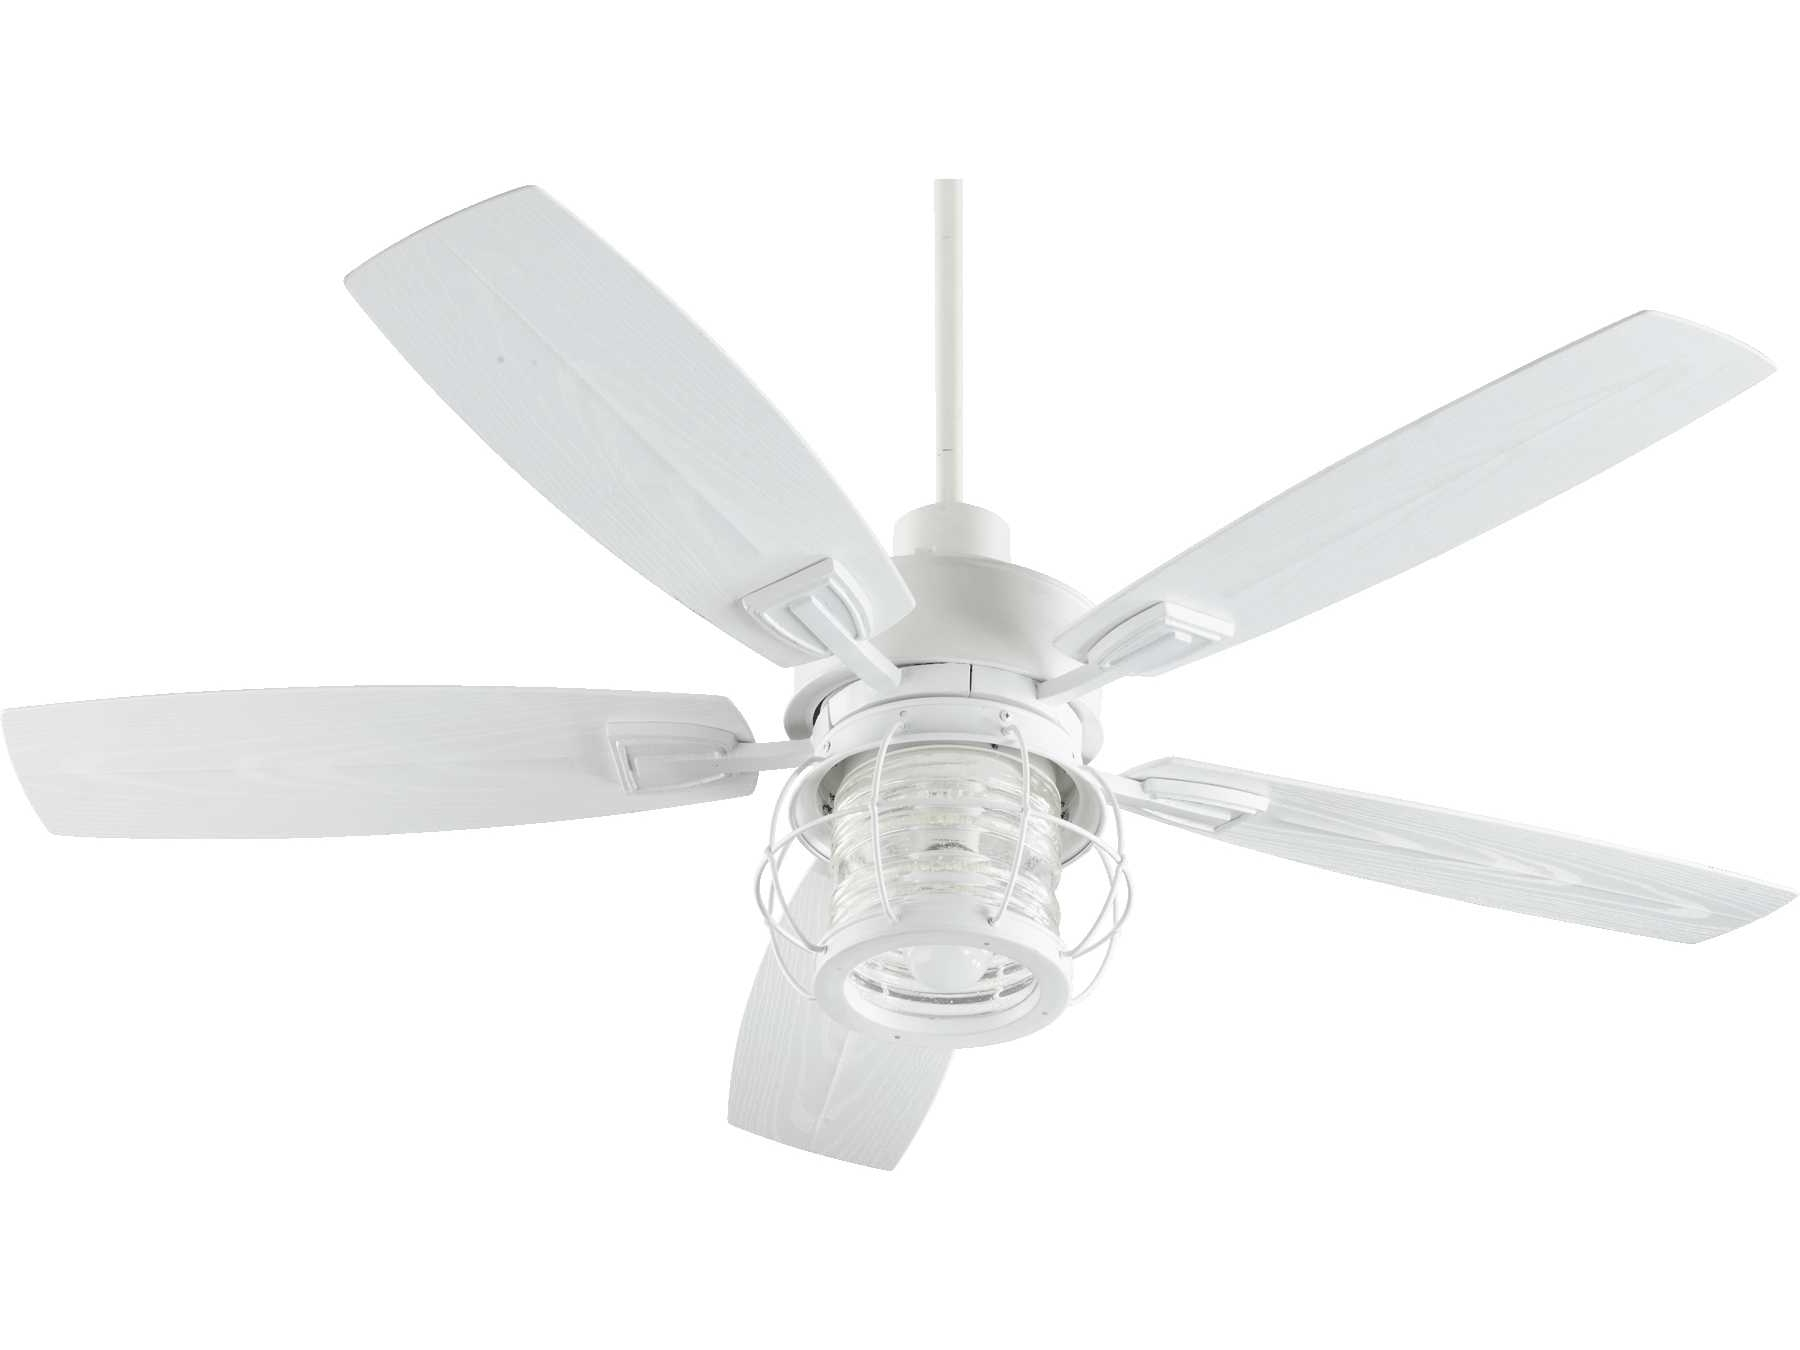 Quorum International Galveston Studio White 52 Inch Outdoor Ceiling Intended For Most Recent Quorum Outdoor Ceiling Fans (View 12 of 20)